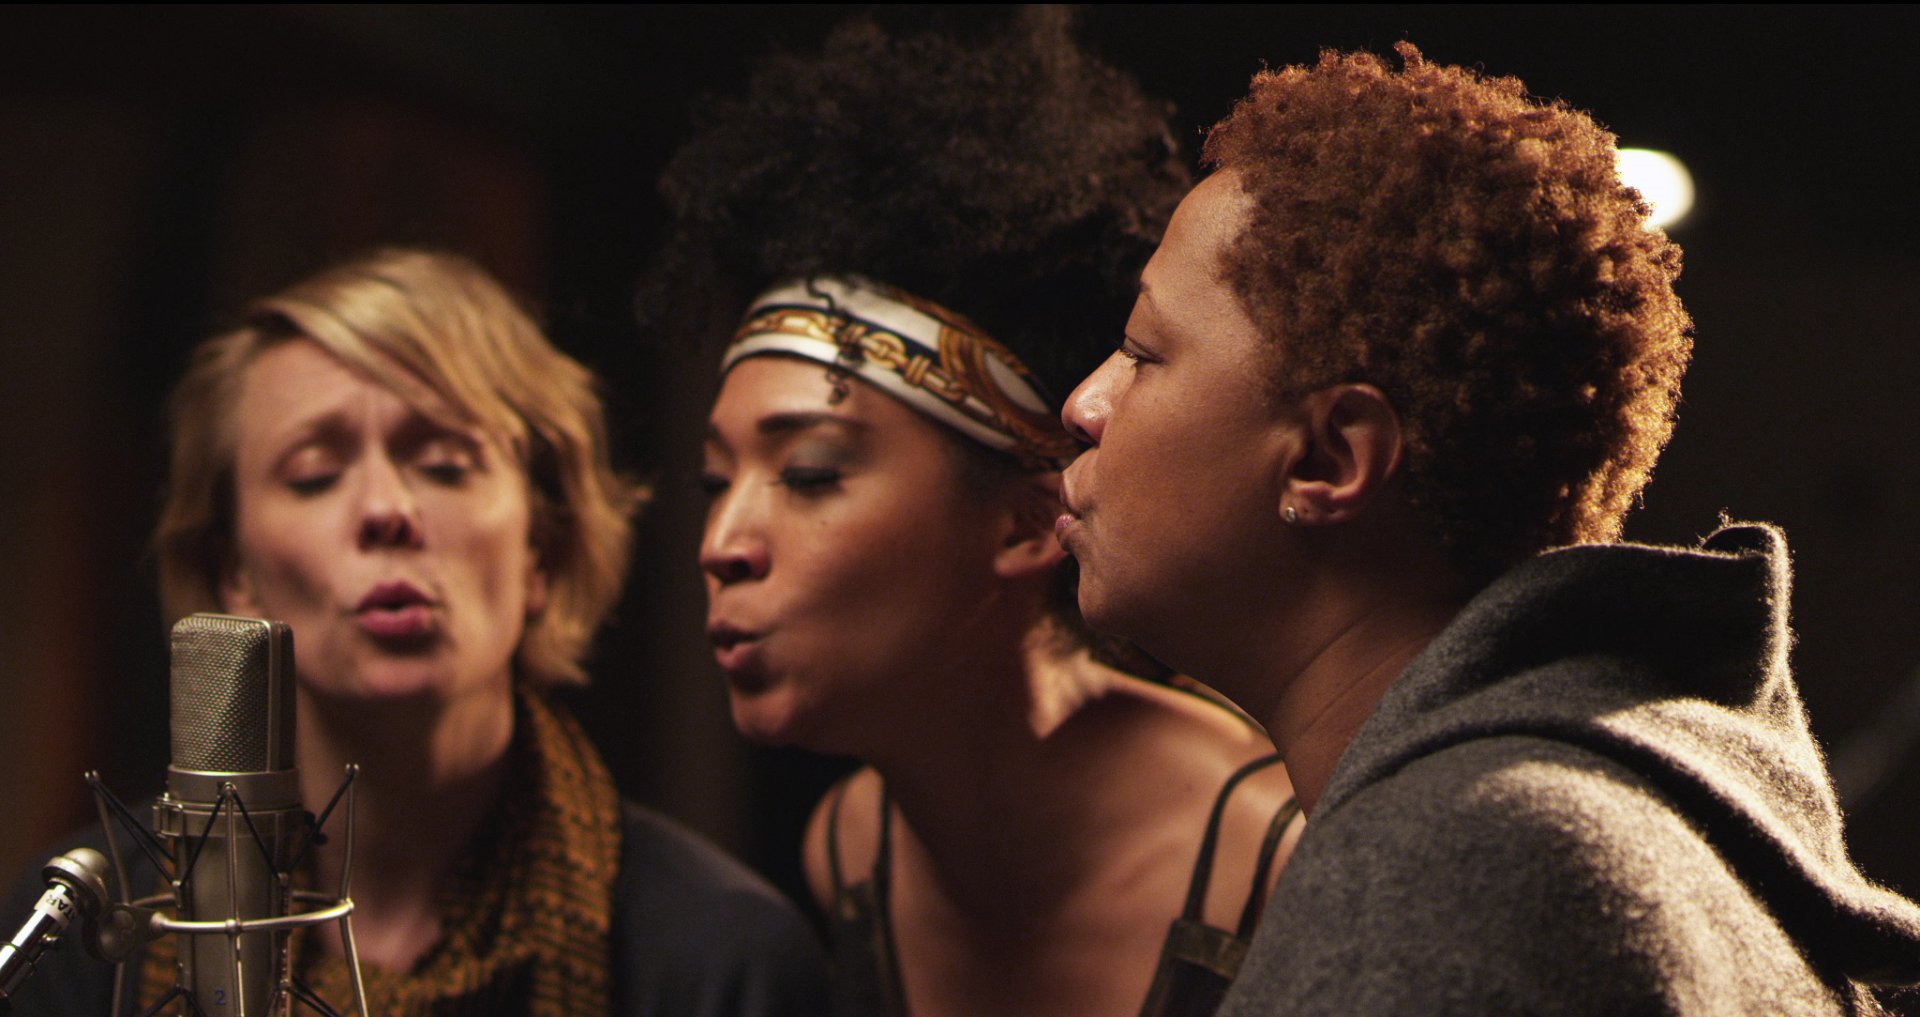 o Lawry  Judith Hill and Lisa Fischer in TWENTY FEET FROM STARDOM courtesy of RADiUS TWC 20 Feet From Stardom: Behind the Documentary about Legendary Backing Singers